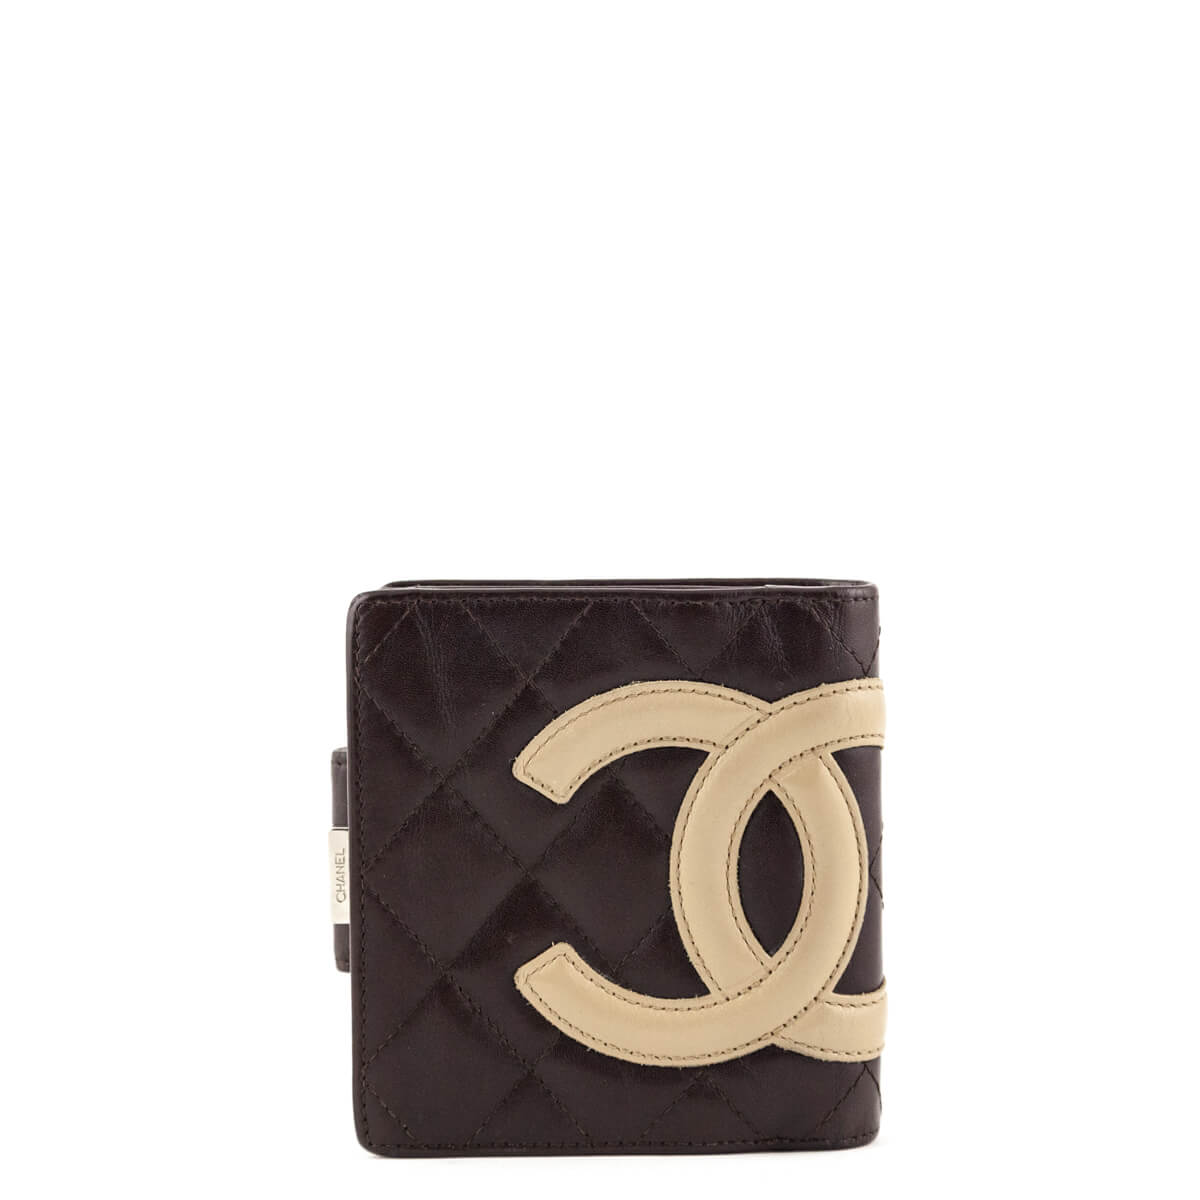 364a9bd8fbb1 Chanel Brown Ligne Cambon Compact Wallet - LOVE that BAG - Preowned  Authentic Designer Handbags ...